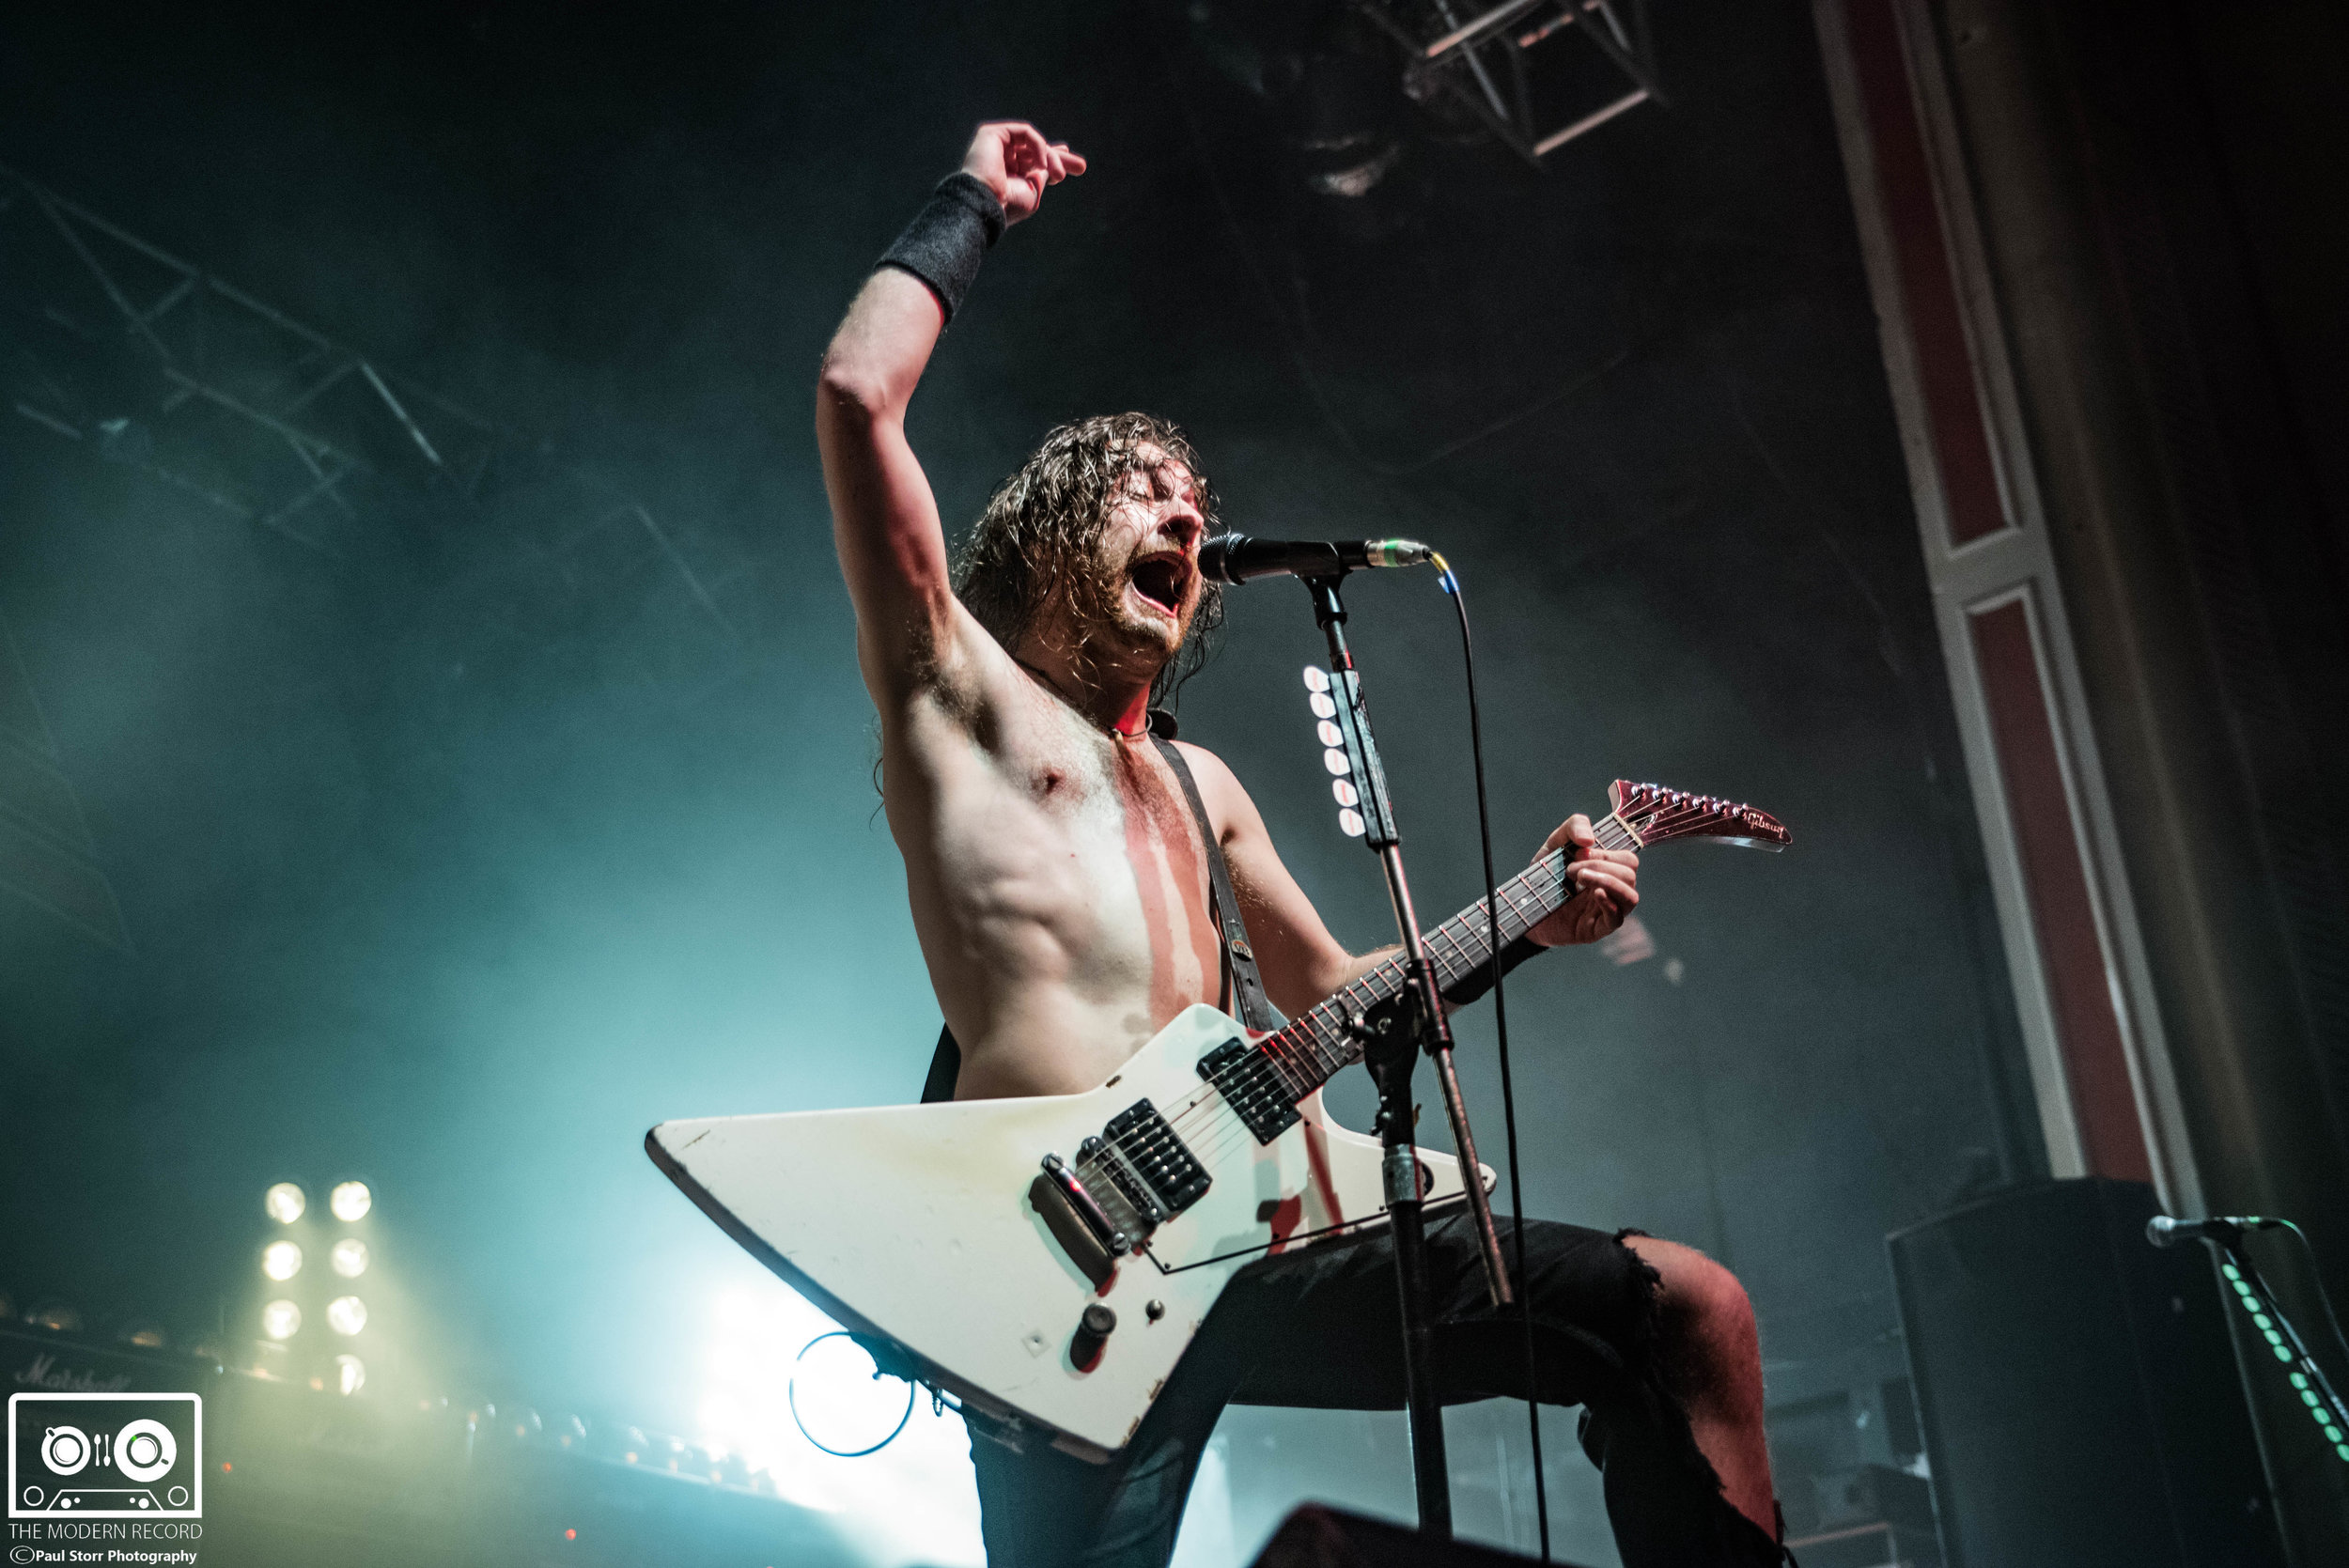 AIRBOURNE PERFORMING AT GLASGOW'S O2 ACADEMY - 13/11/2017  PICTURE BY: PAUL STORR PHOTOGRAPHY